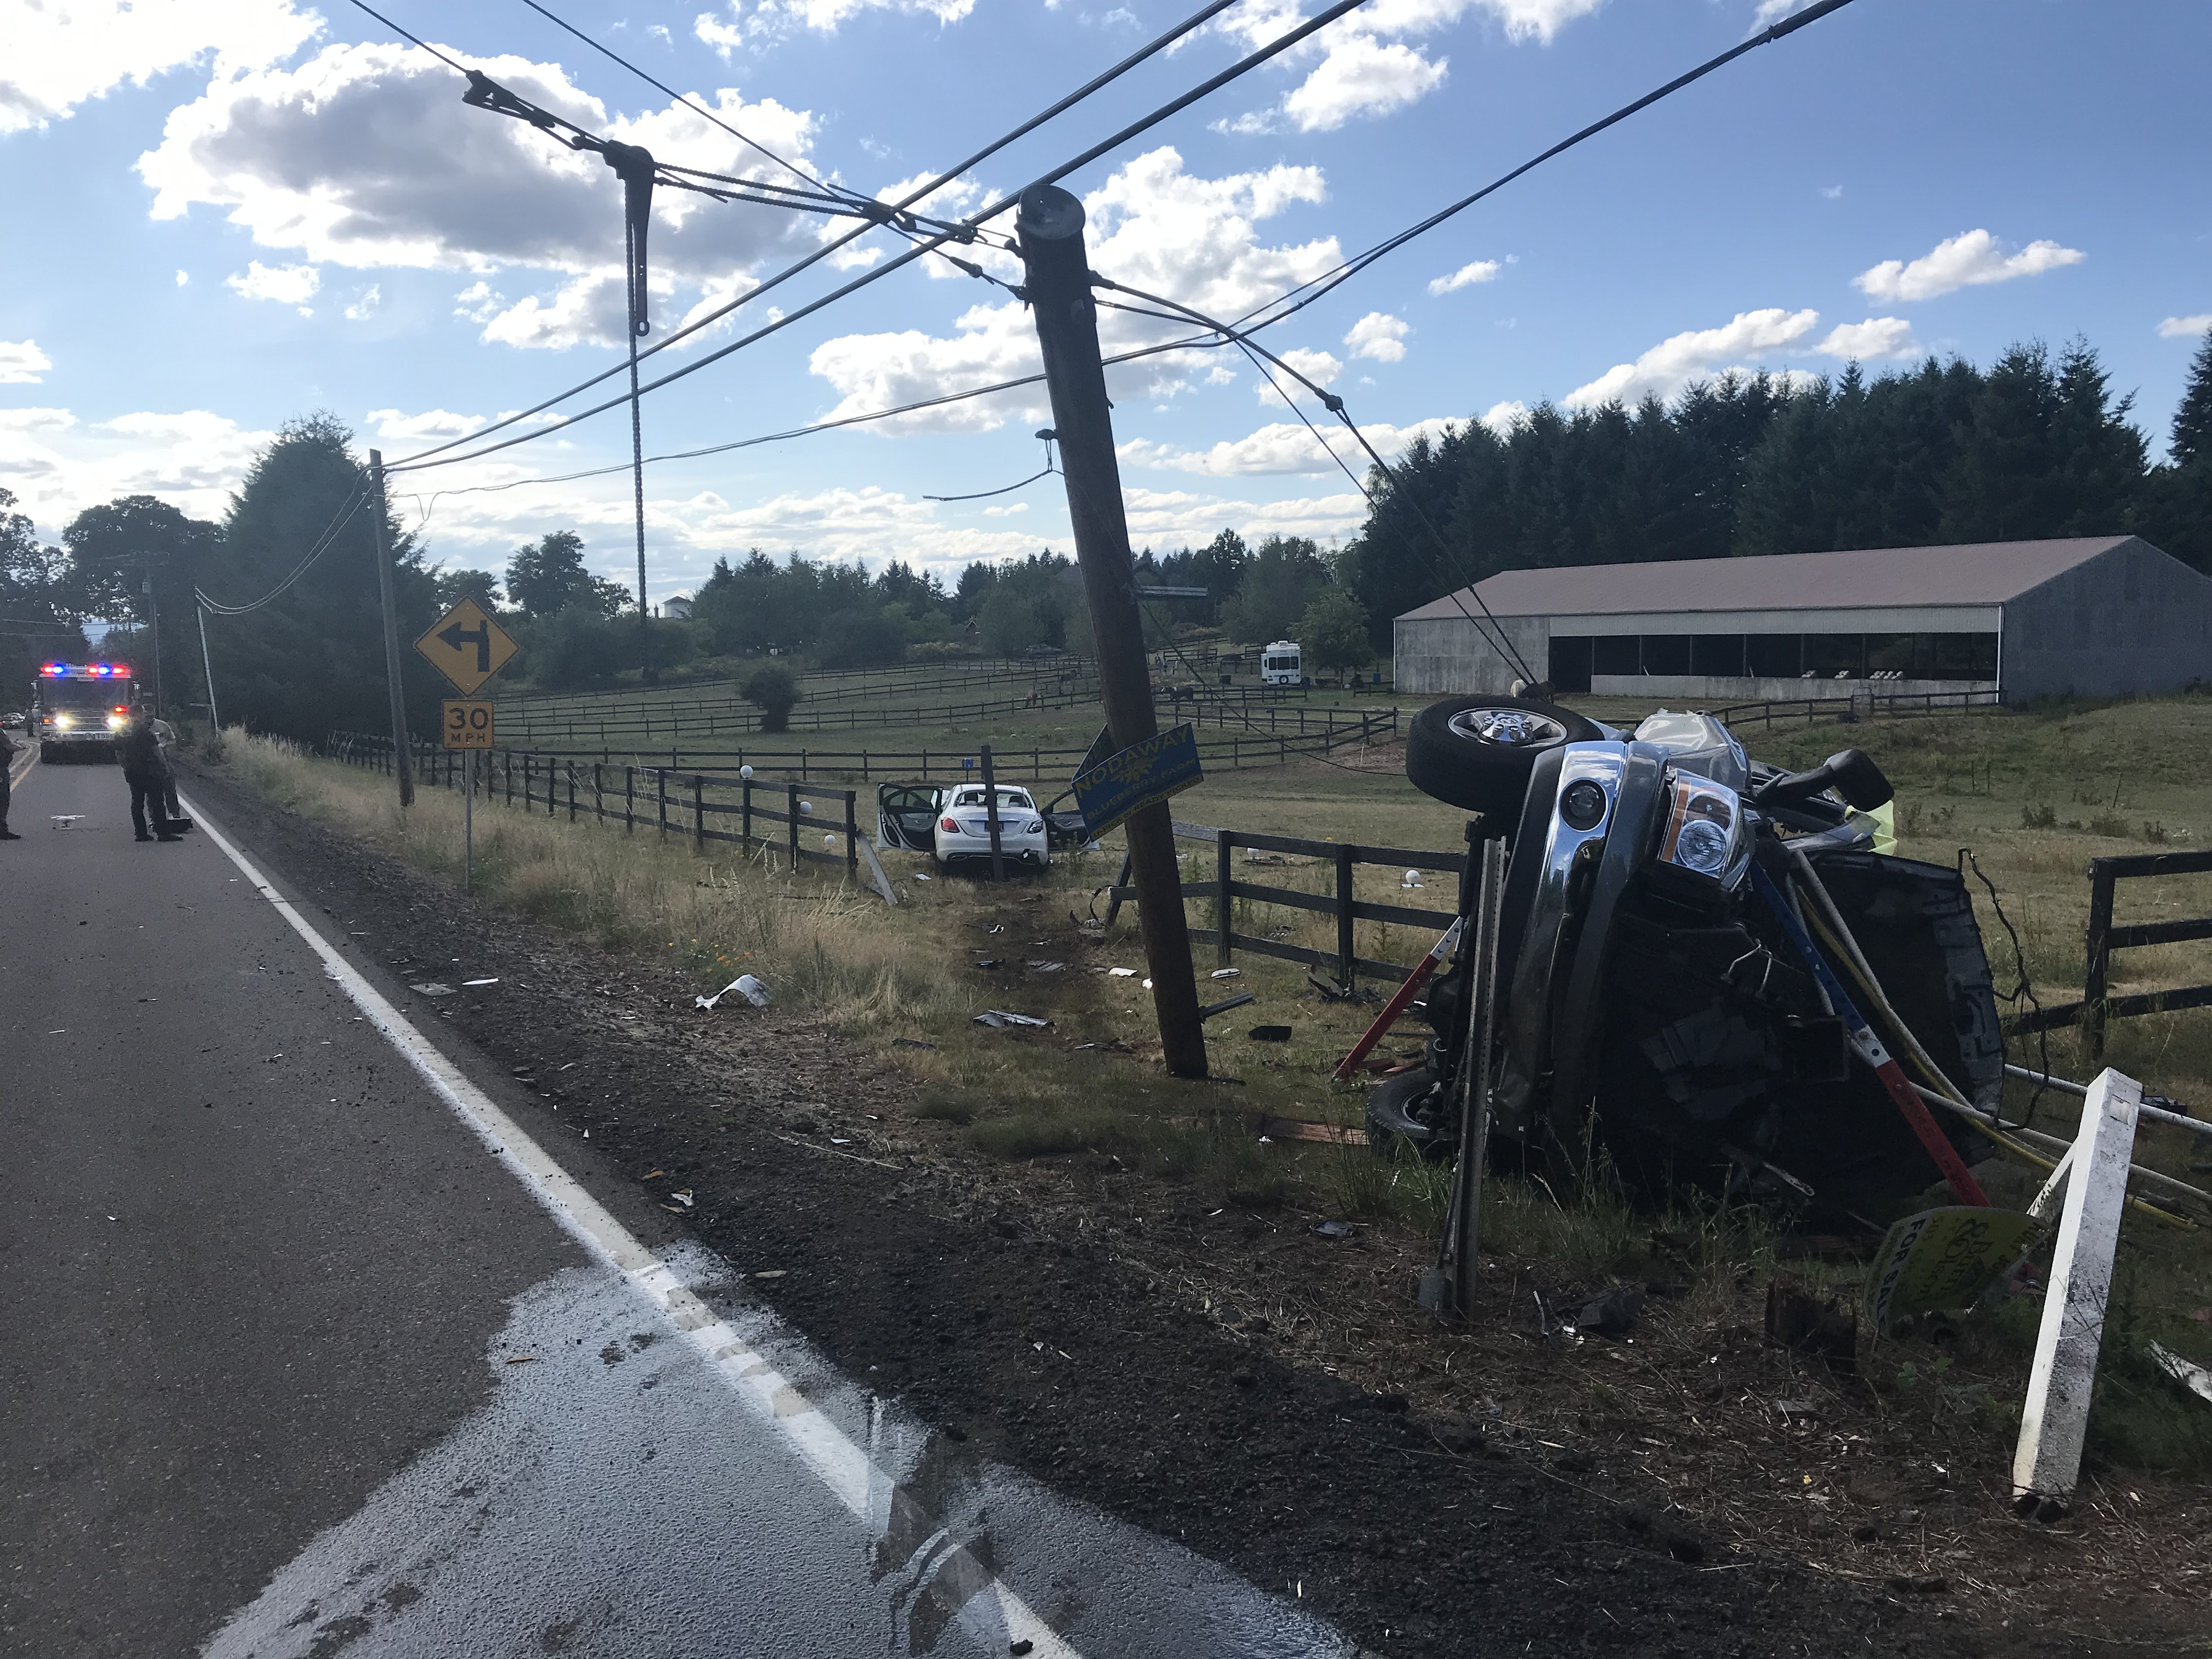 Roll-over crash in Tualatin